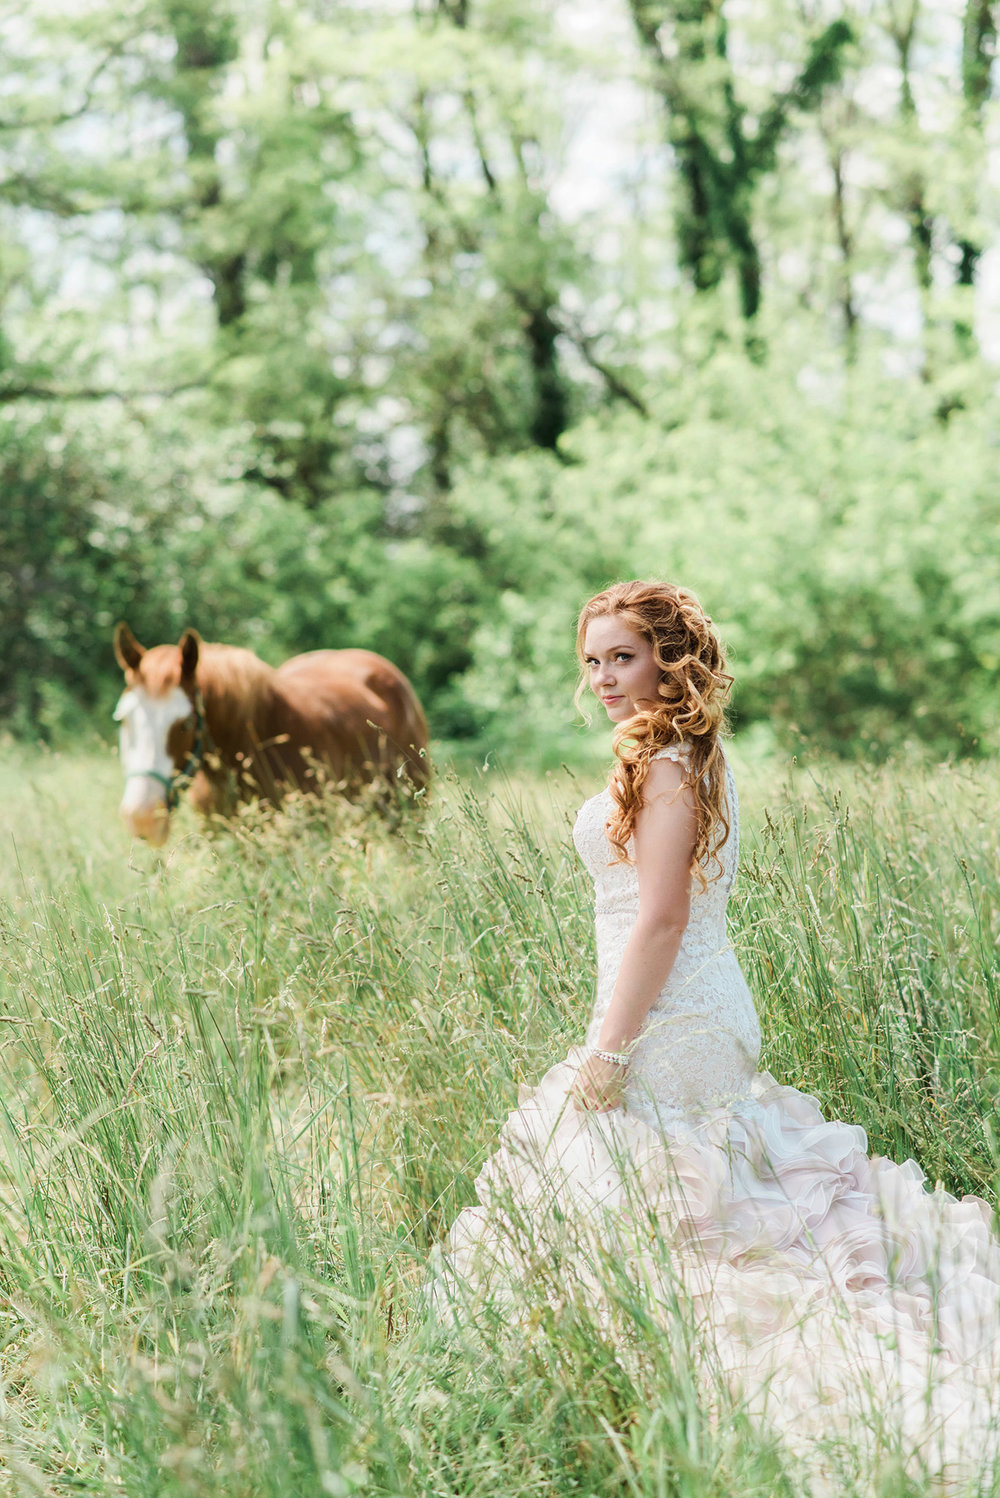 Nicole Corrine Mason City Iowa Wedding Photographer Kirksville Missouri wedding bride and horse  .jpg